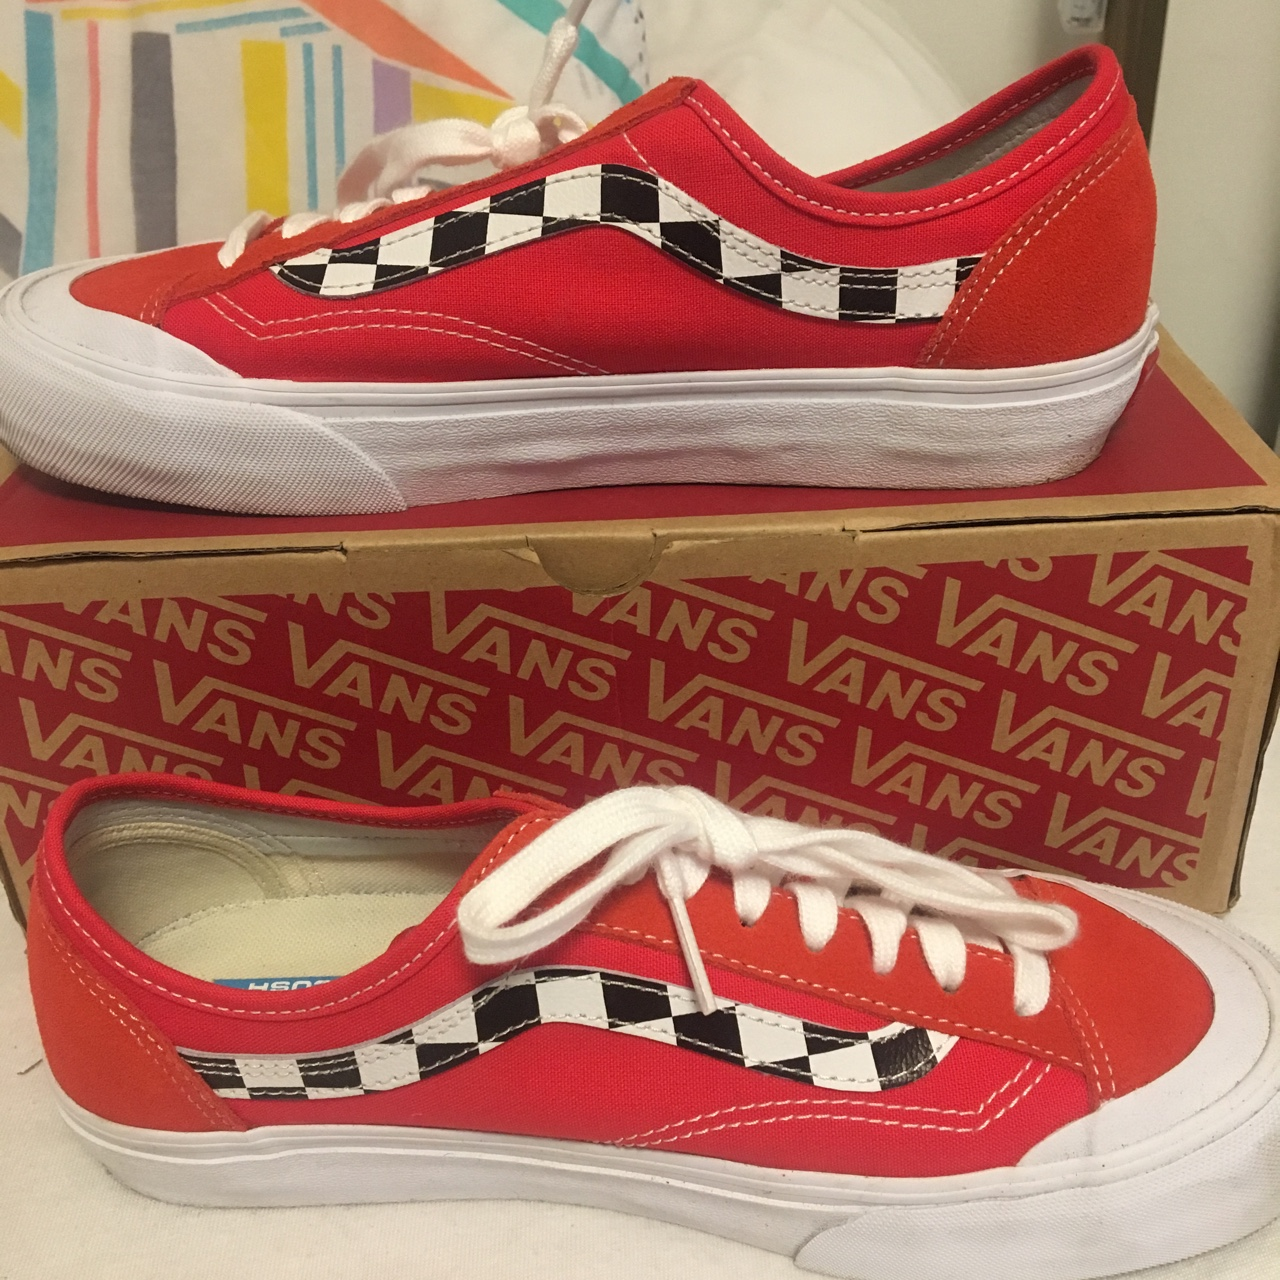 WORN ONCE VANS EXCLUSIVE RED STYLE